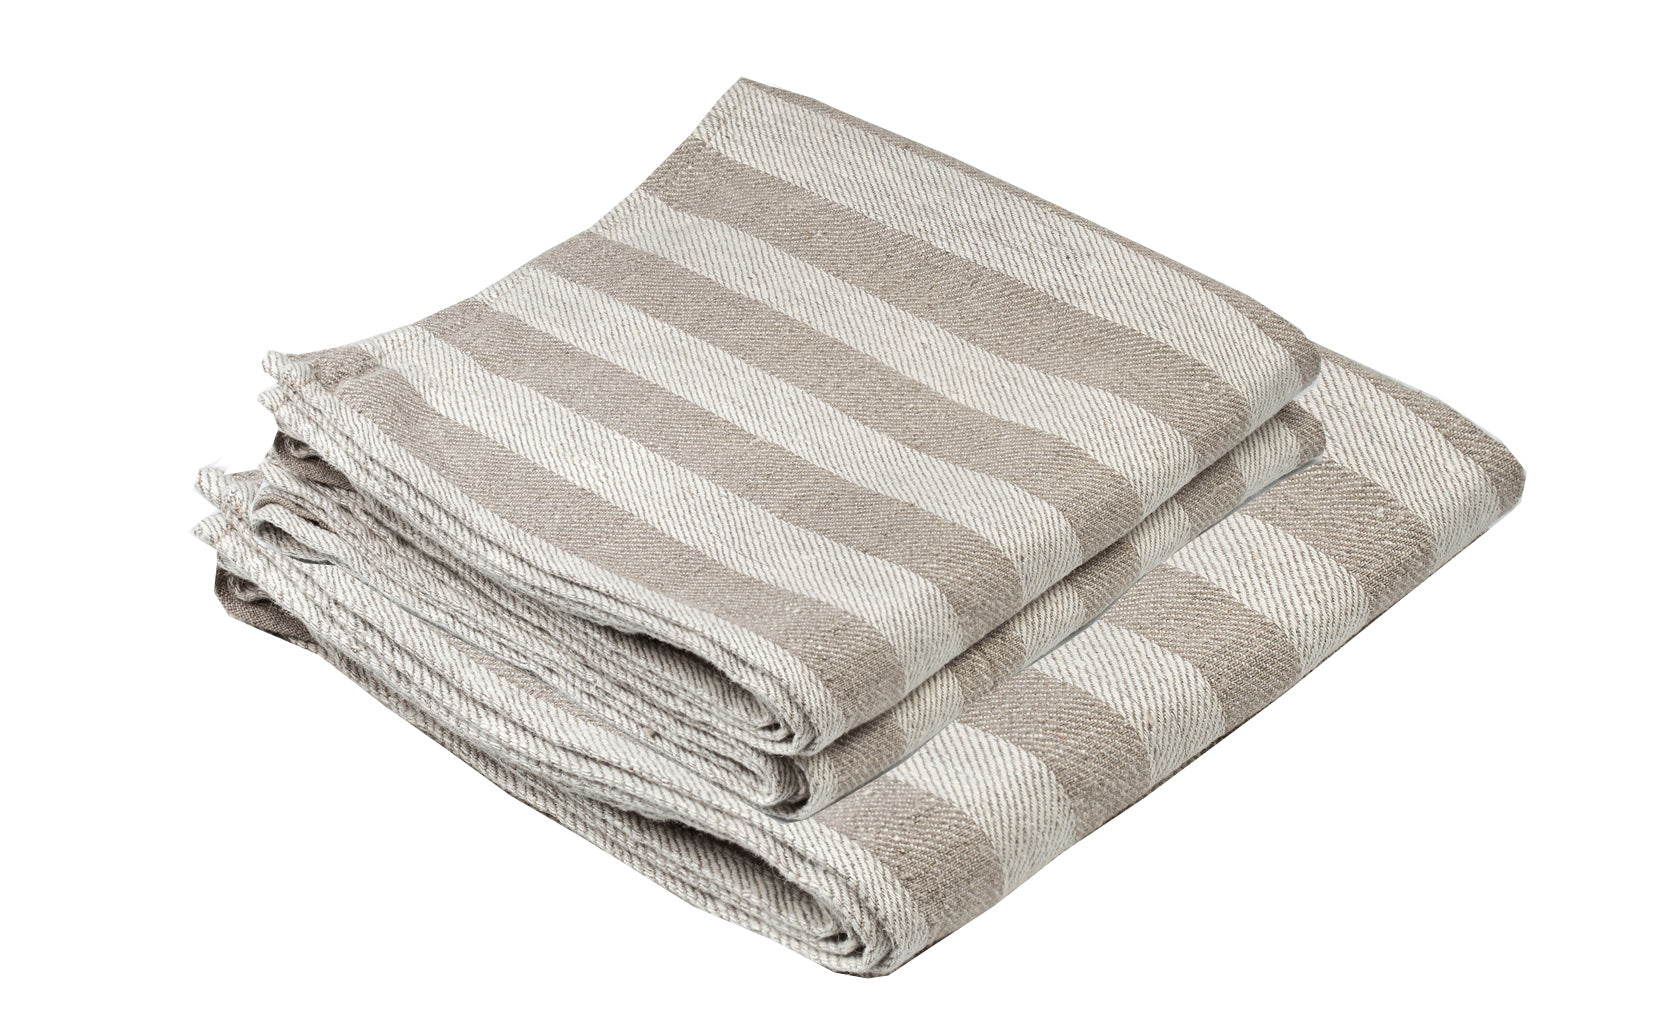 Bless Linen Jacquard Striped Pure Linen Towel Set Of 3 Gray White